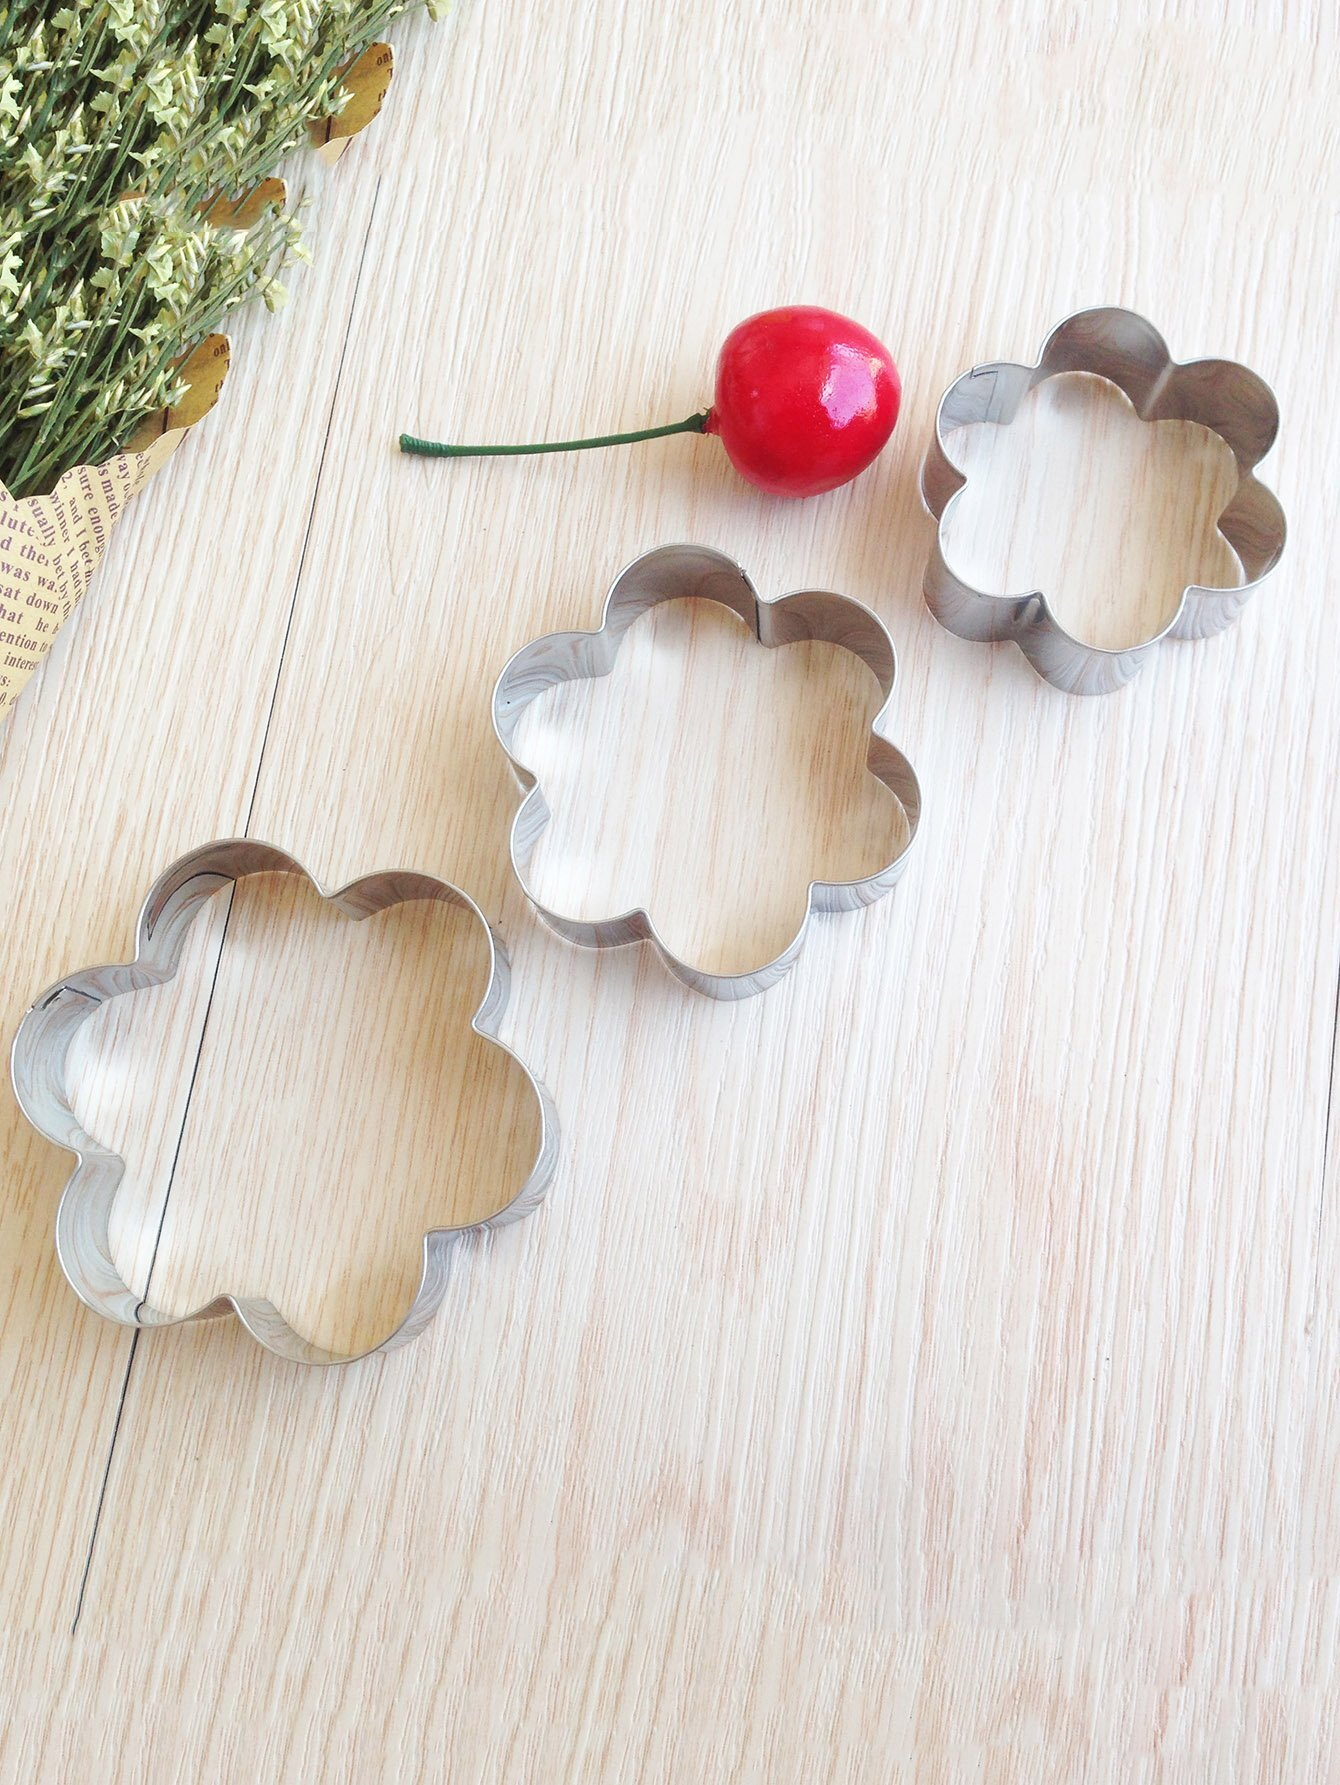 Flower Cookie Mold 3pcs dough cutter mold 3pcs